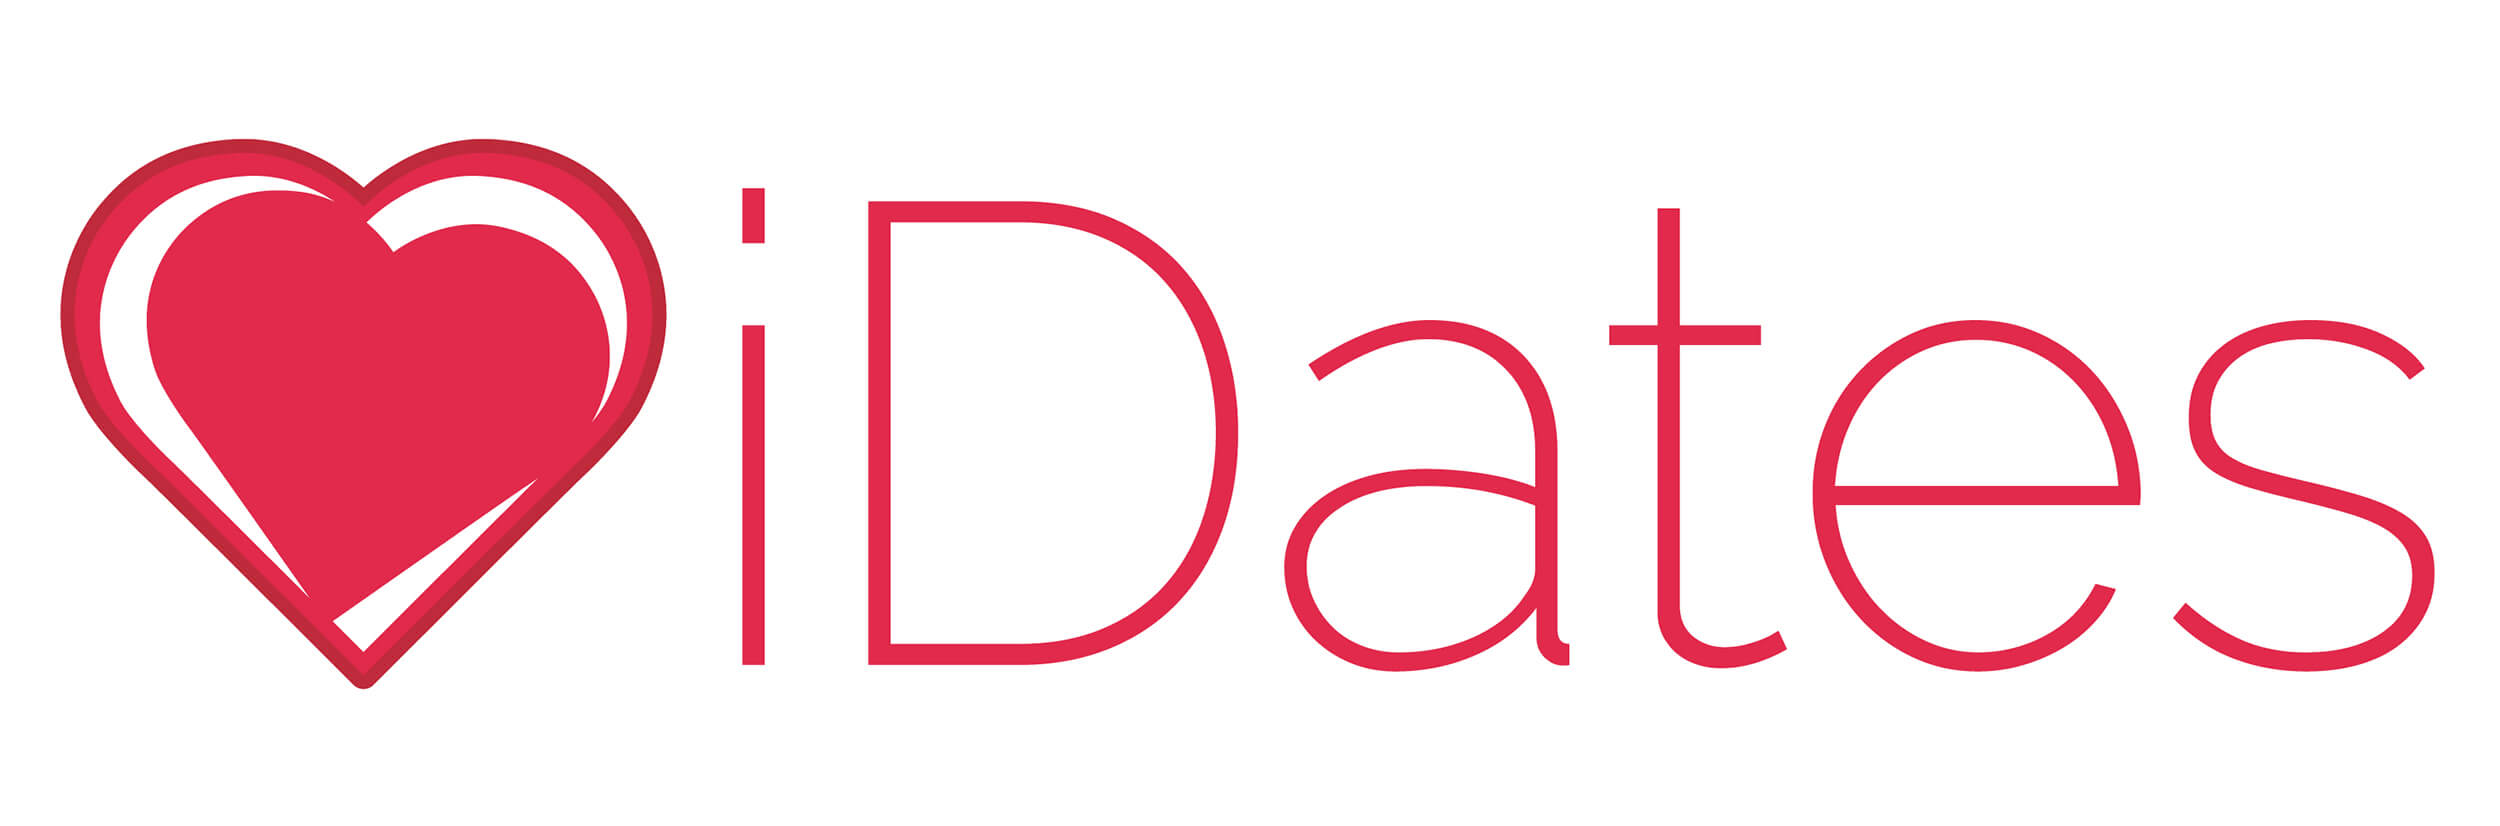 iDates home, Online Dating Site, Company Name Logo